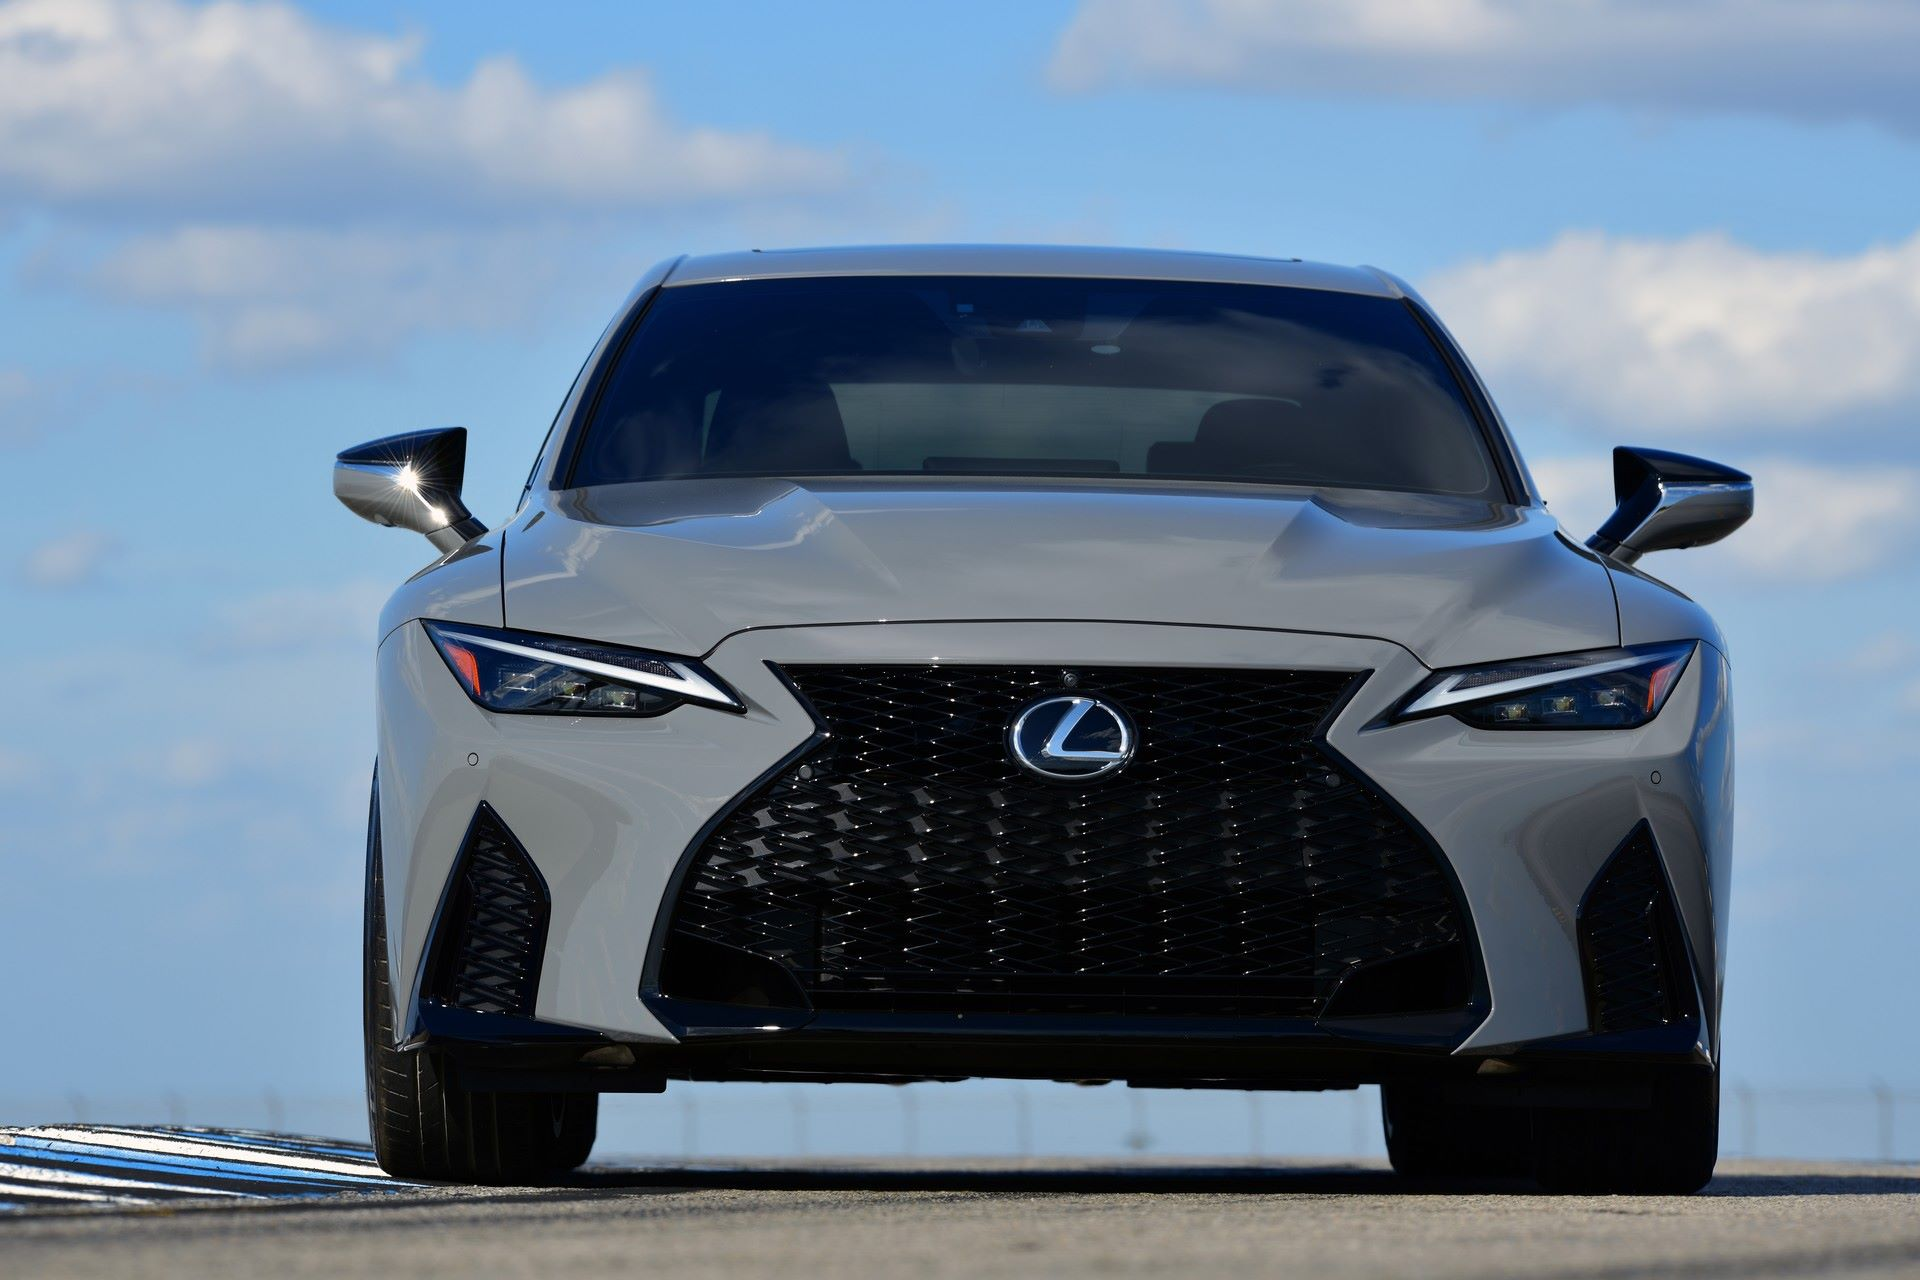 Lexus-IS-500-F-Sport-Performance-Launch-Edition-29